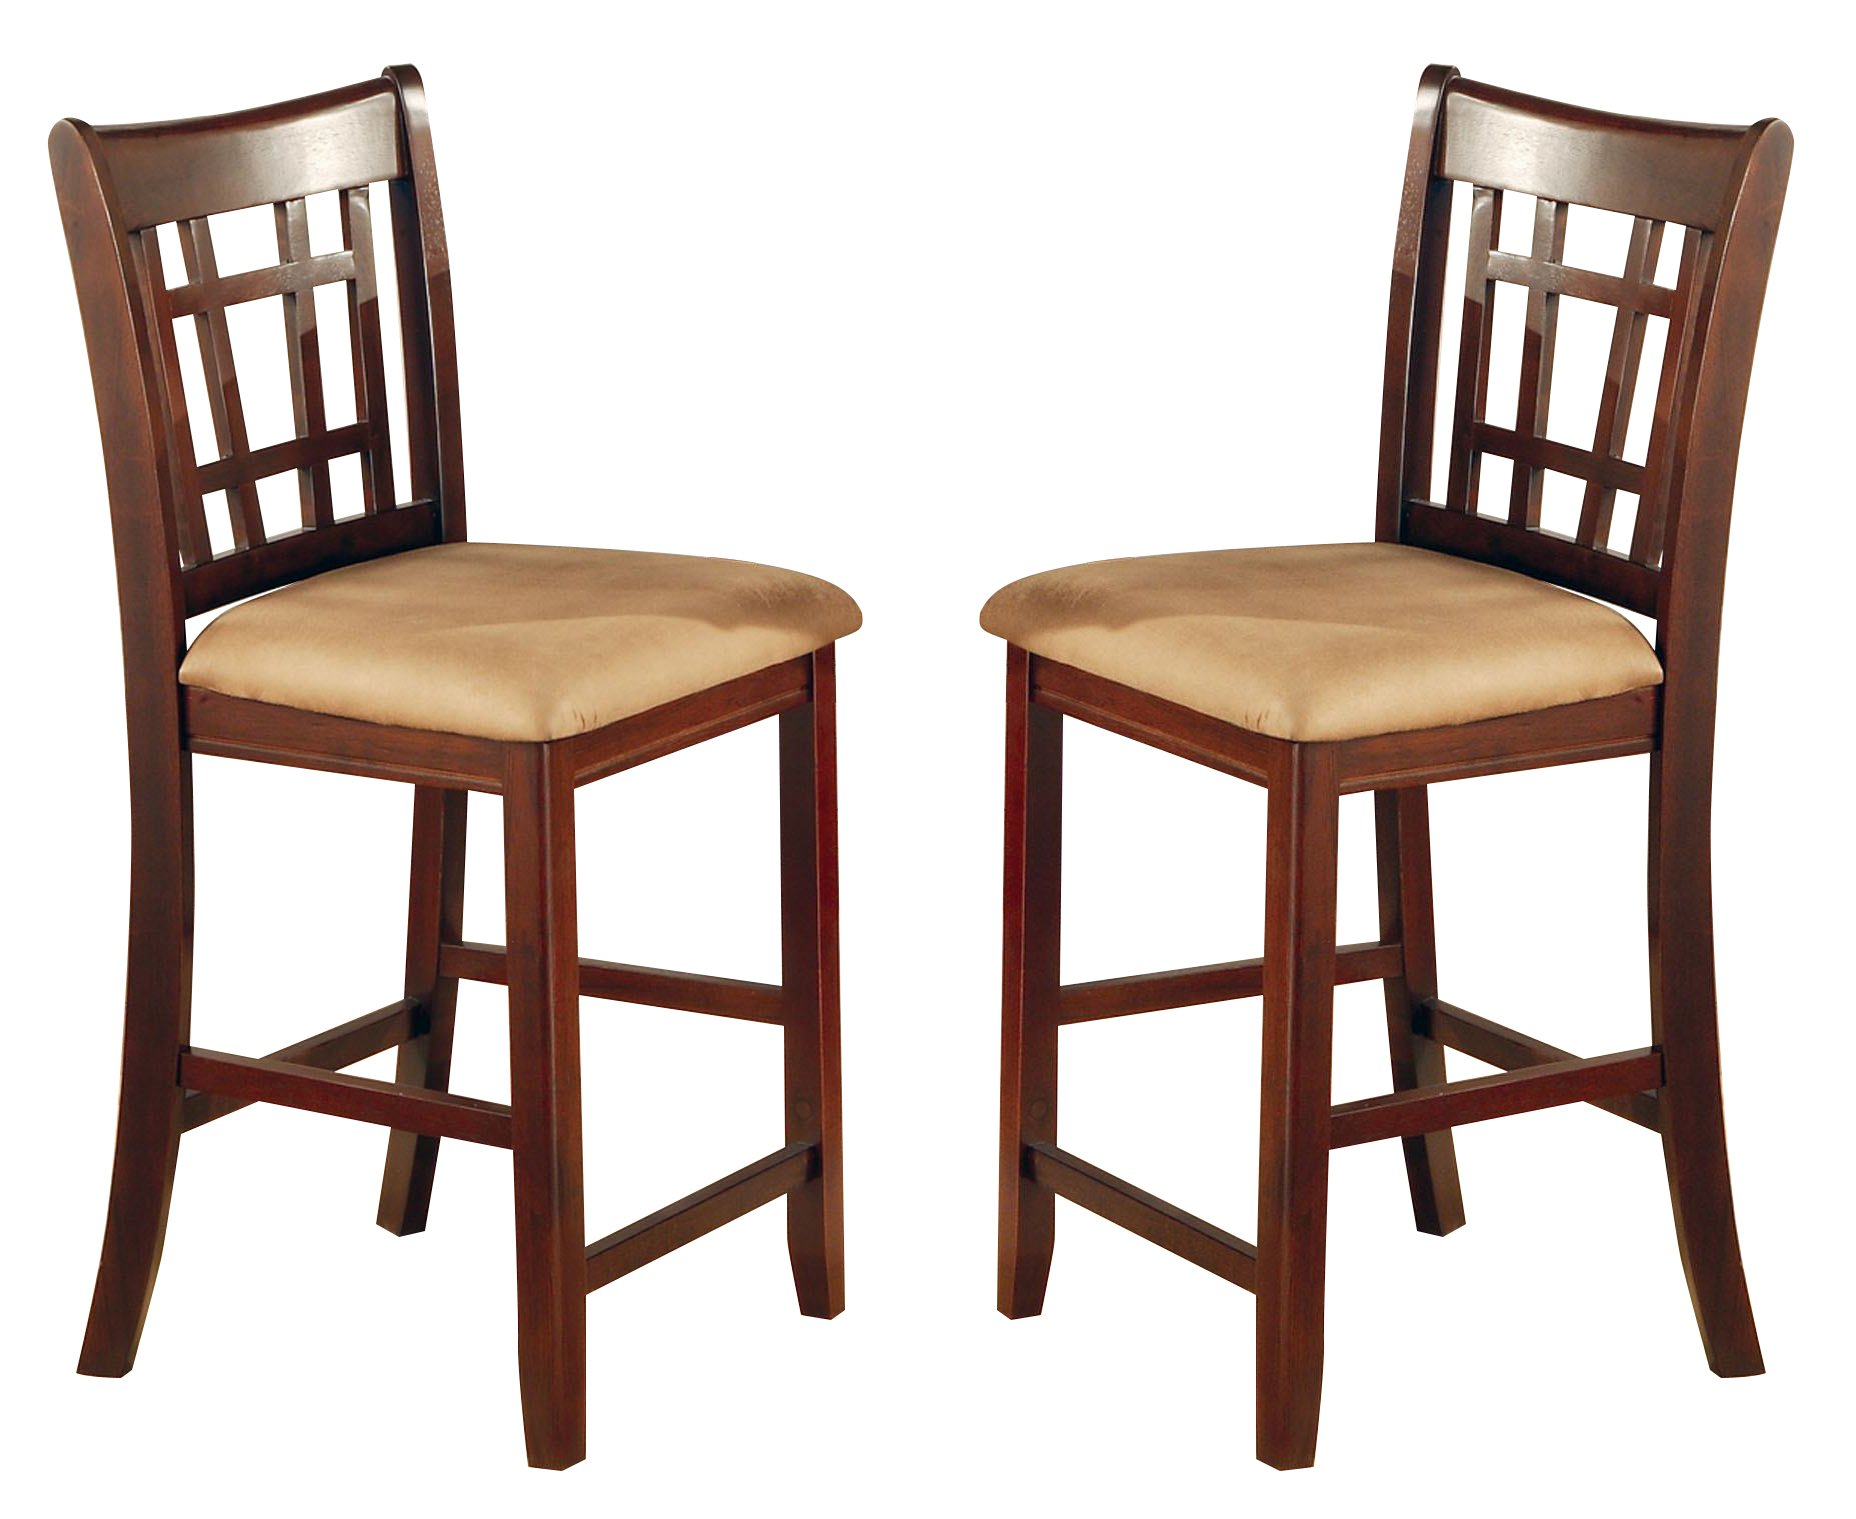 Coaster Home Furnishings  Lavon Modern Window Back Counter Height Bar Stool ( Set of 2 ) - Warm Brown  / Warm Tan Fabric by Coaster Home Furnishings